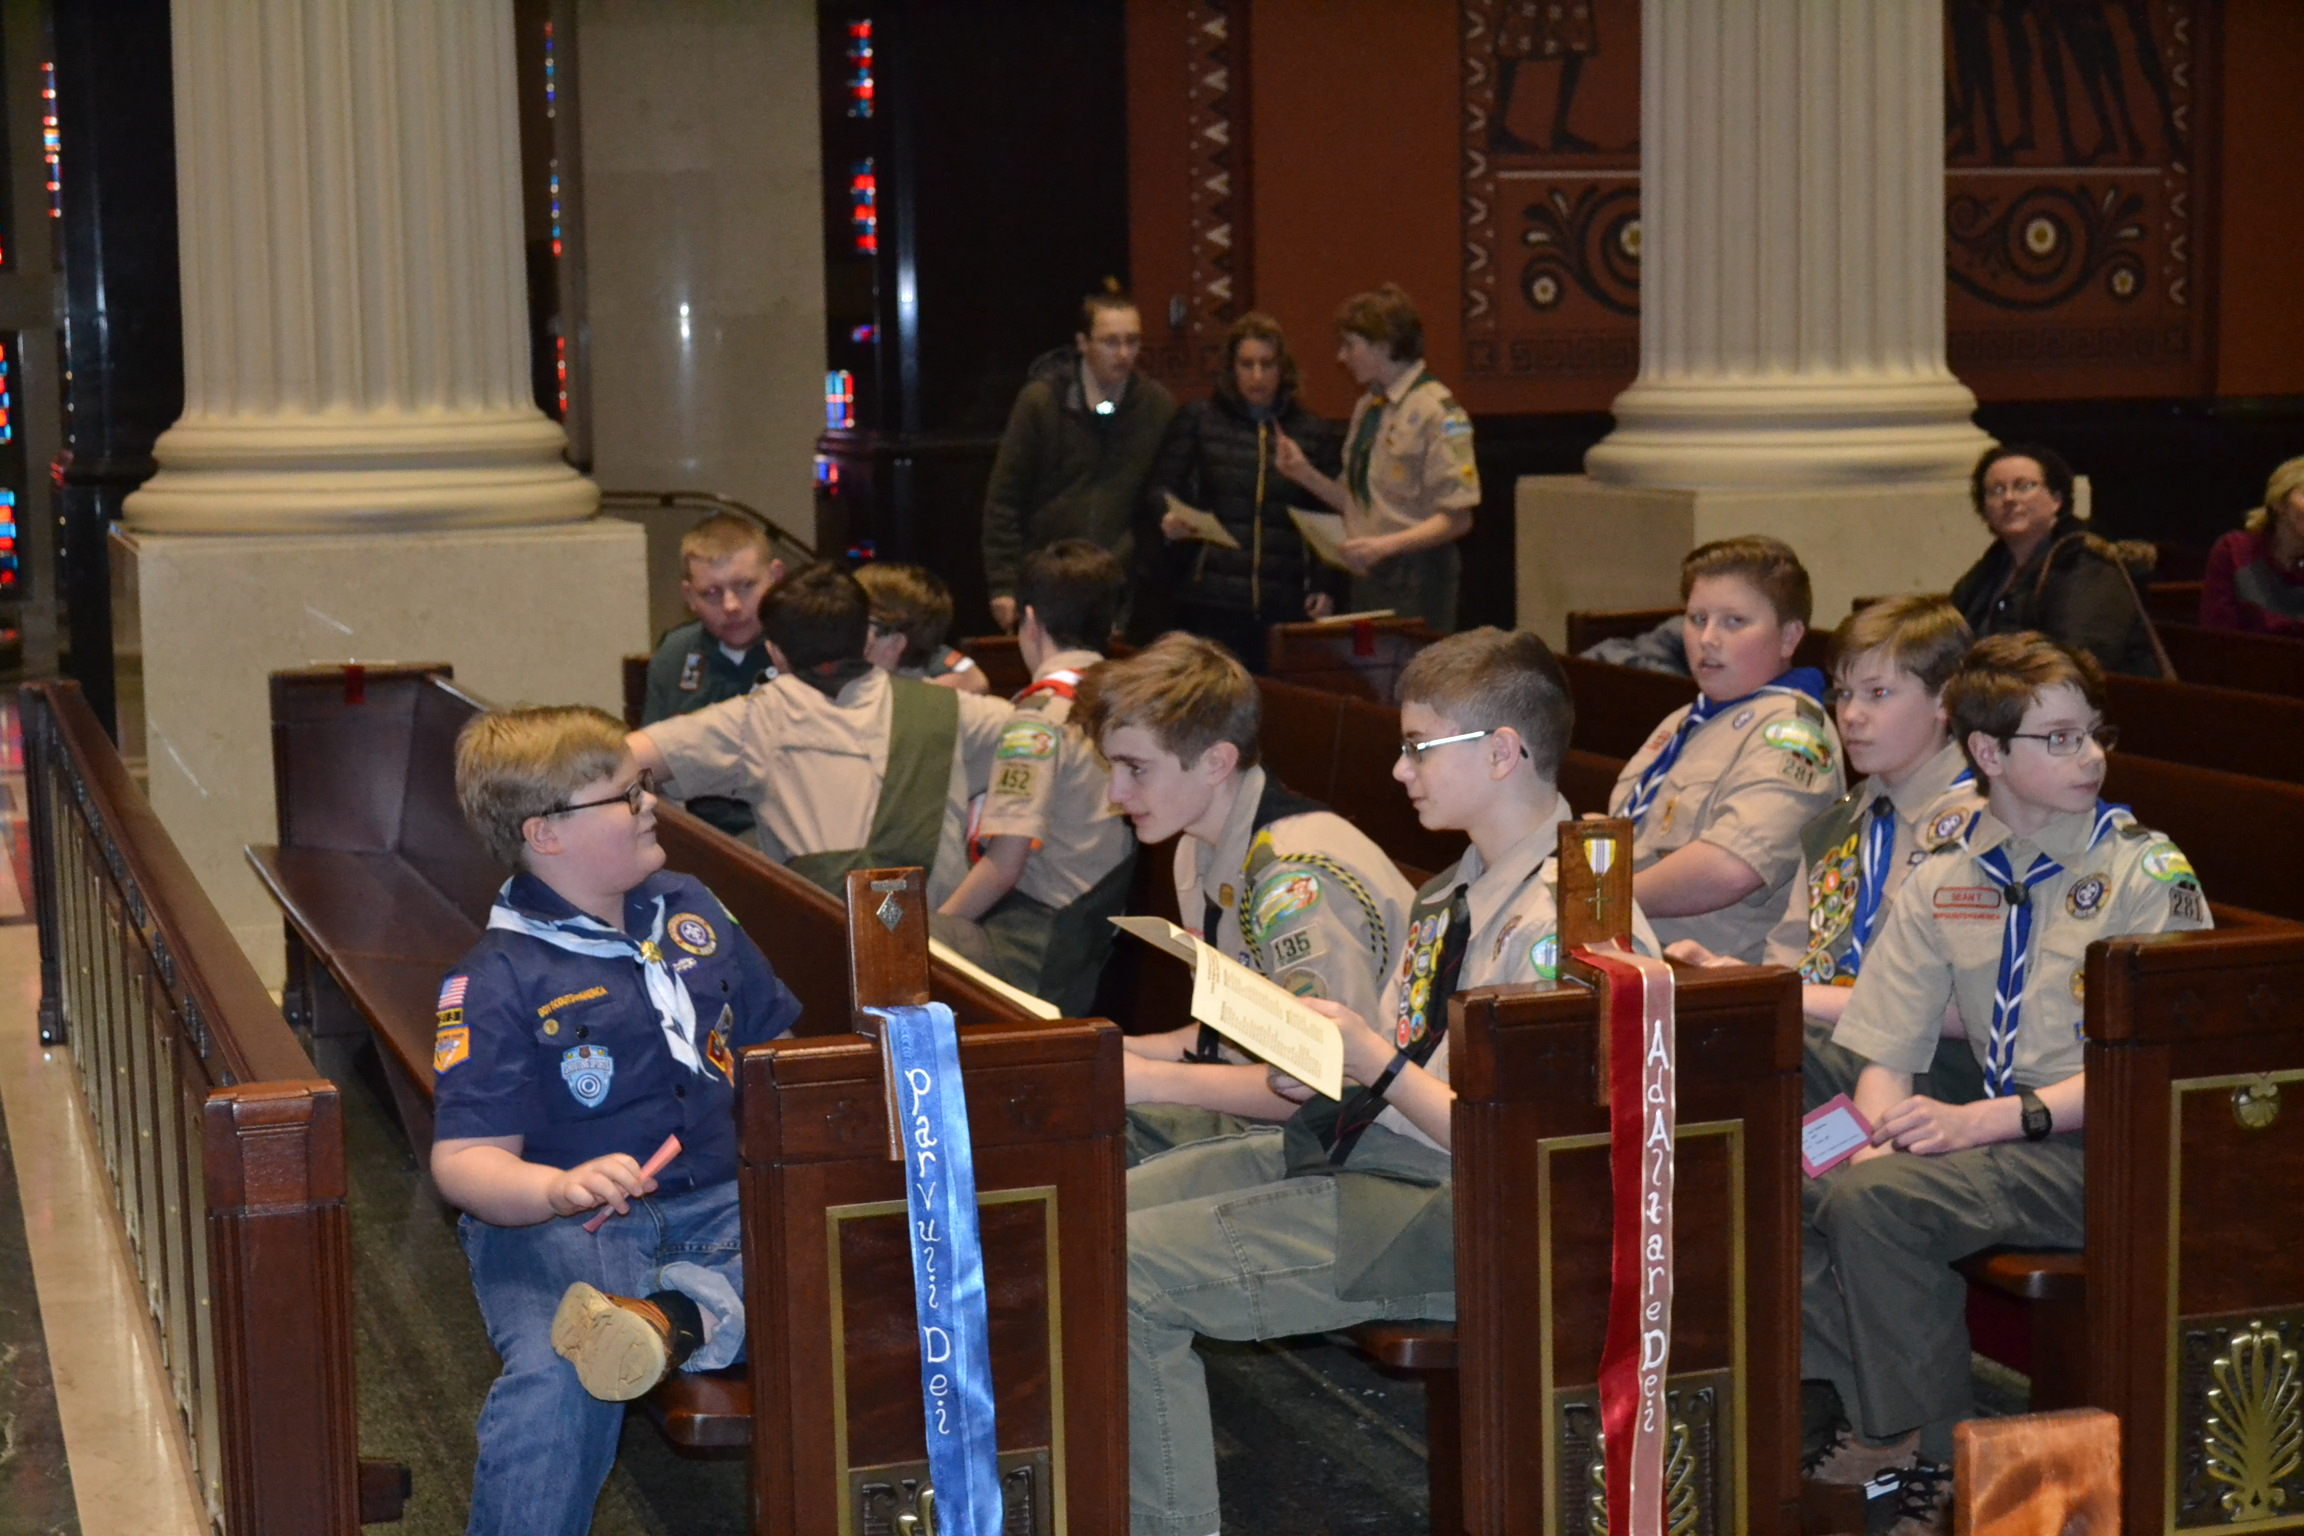 Boy Scouts from the Archdiocese of Cincinnati gather for the 2018 Religious Emblems Ceremony. (CT Photo/Greg Hartman)